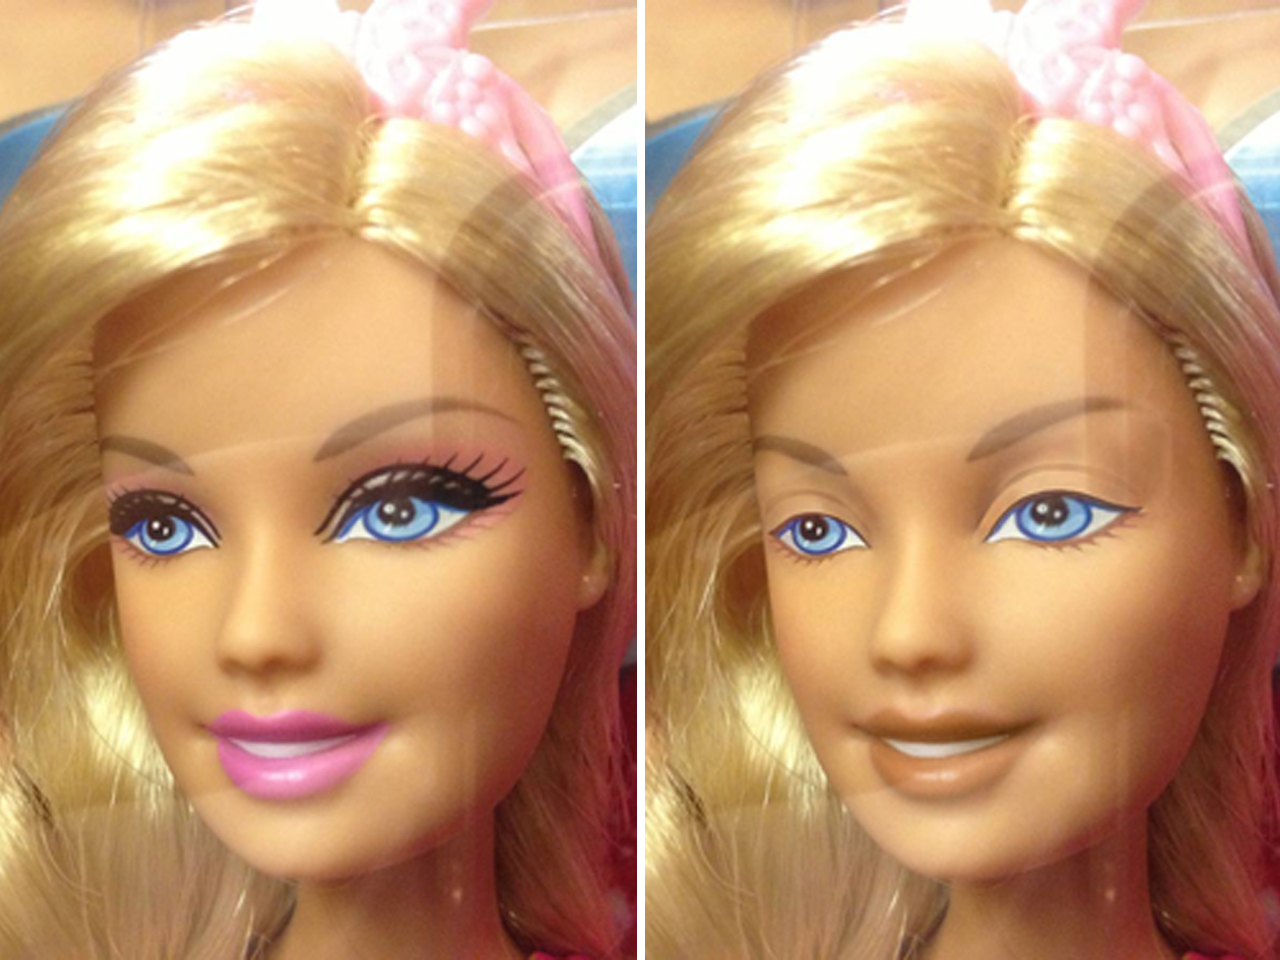 Dolls Without Makeup An Artist S Vision Goes Viral